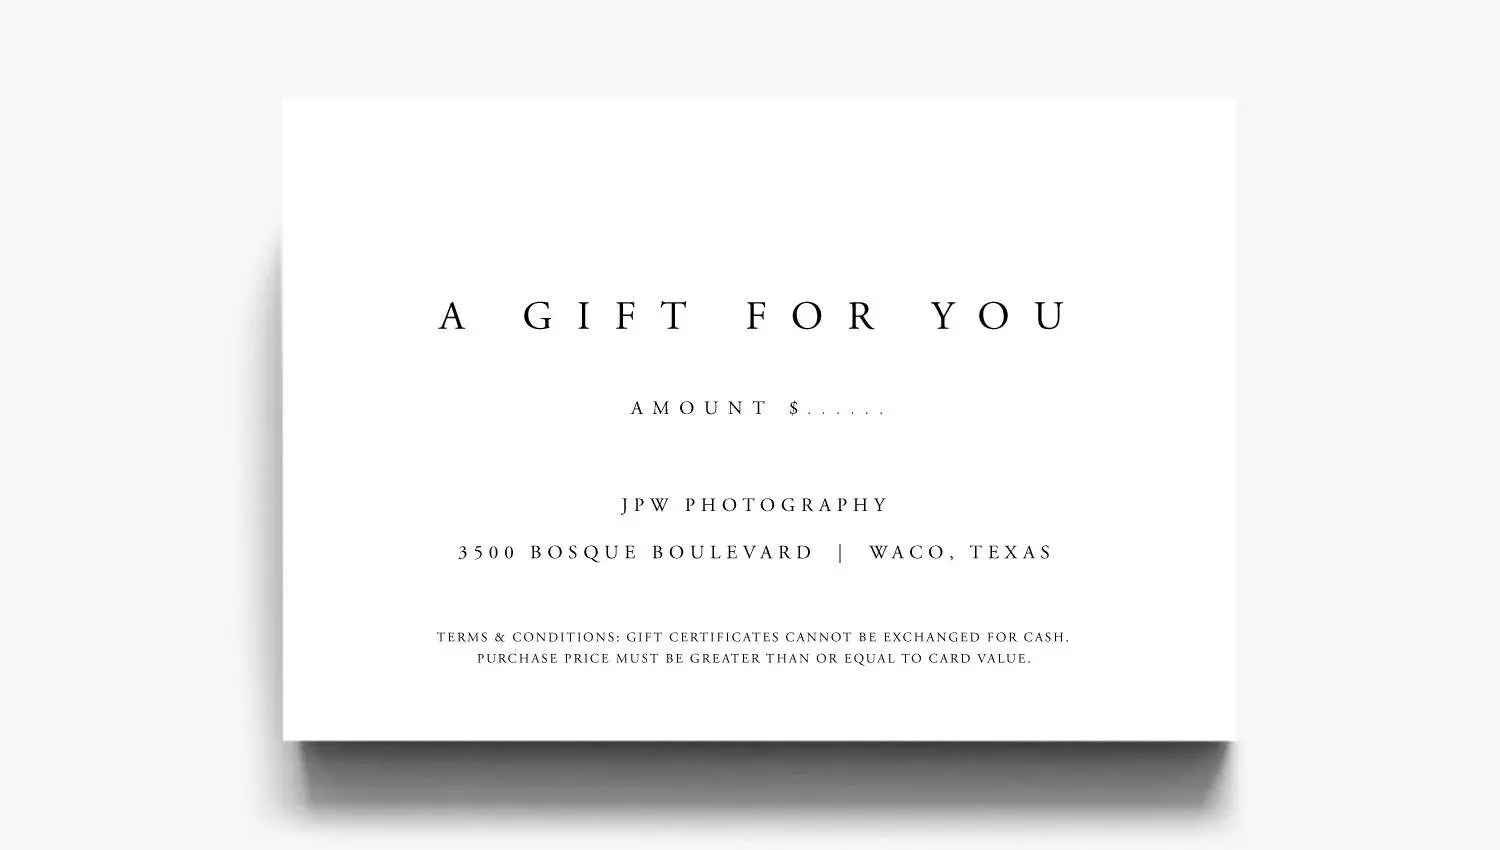 Gift Certificate Template A Gift For You Gift Voucher Etsy